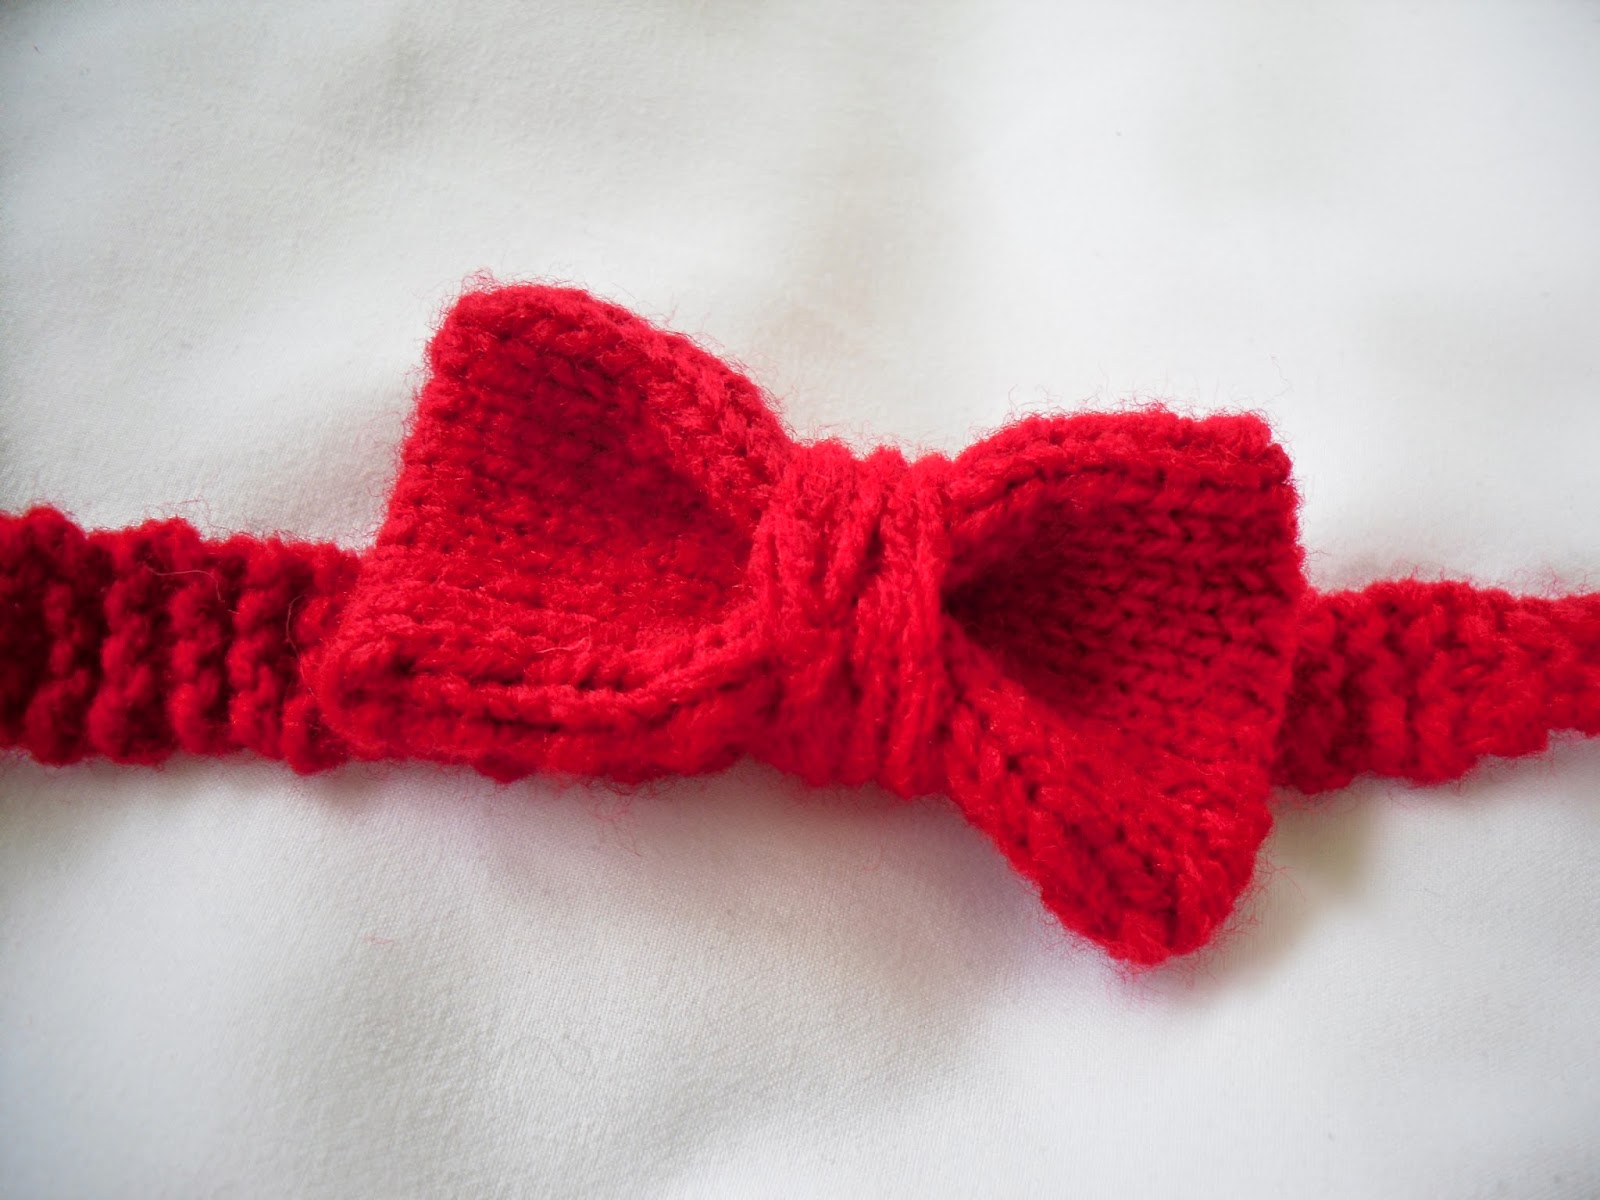 Bow Tie Knitting Pattern : Not Your Grandmother`s Knitting: Bow ties are cool